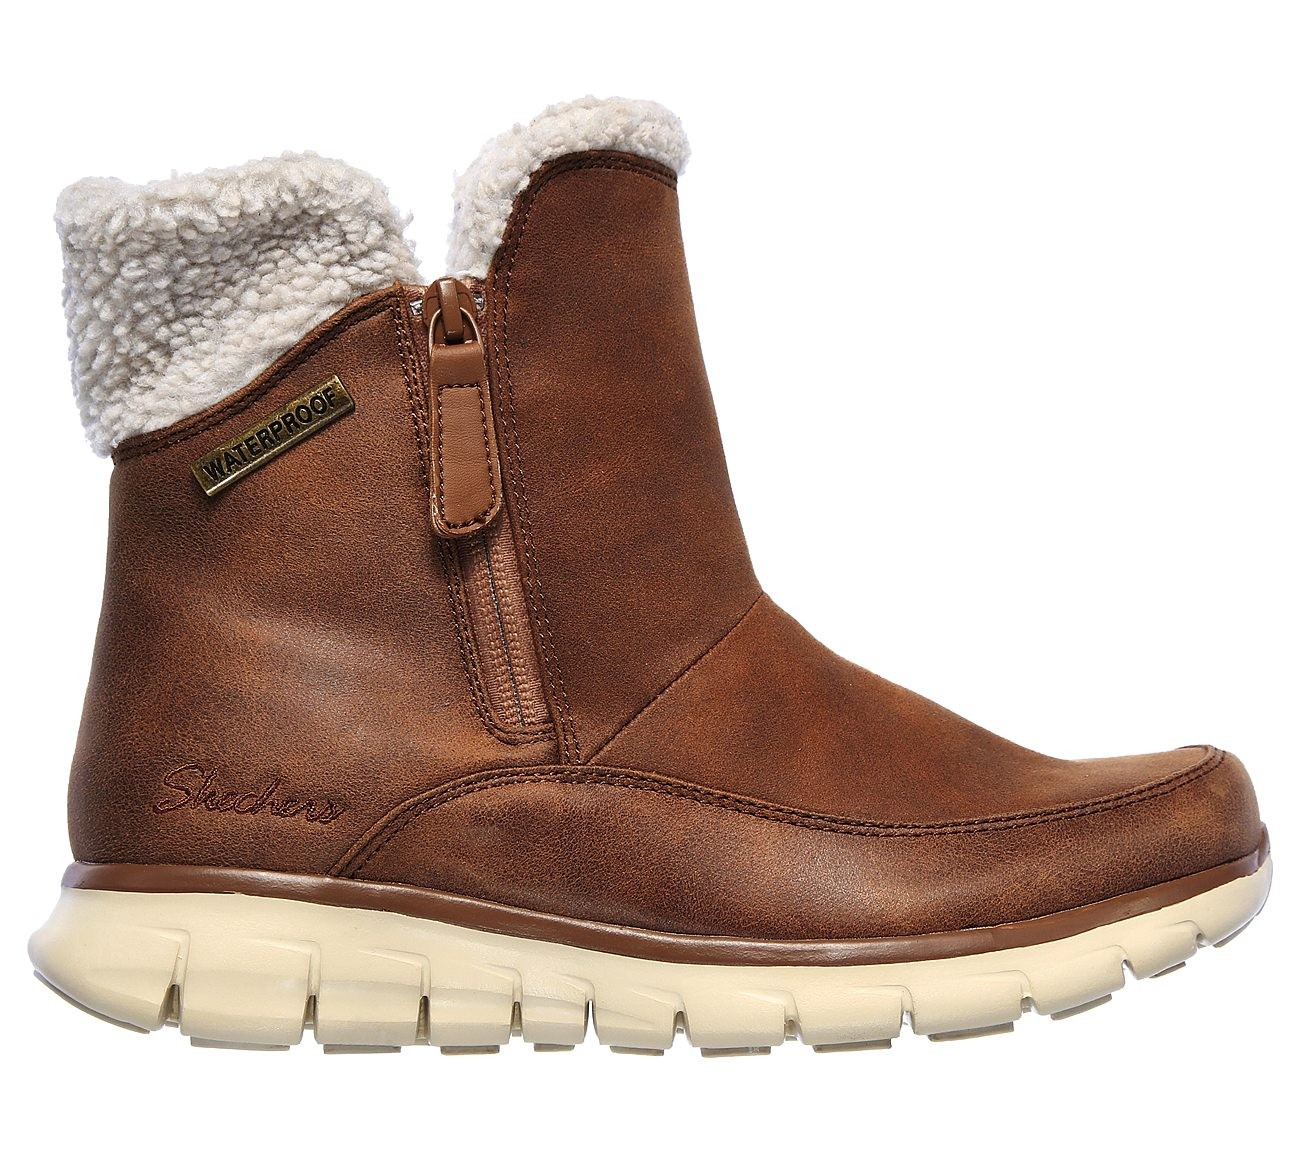 SKECHERS WOMENS SYNERGY WATERPROOF CHESTNUT